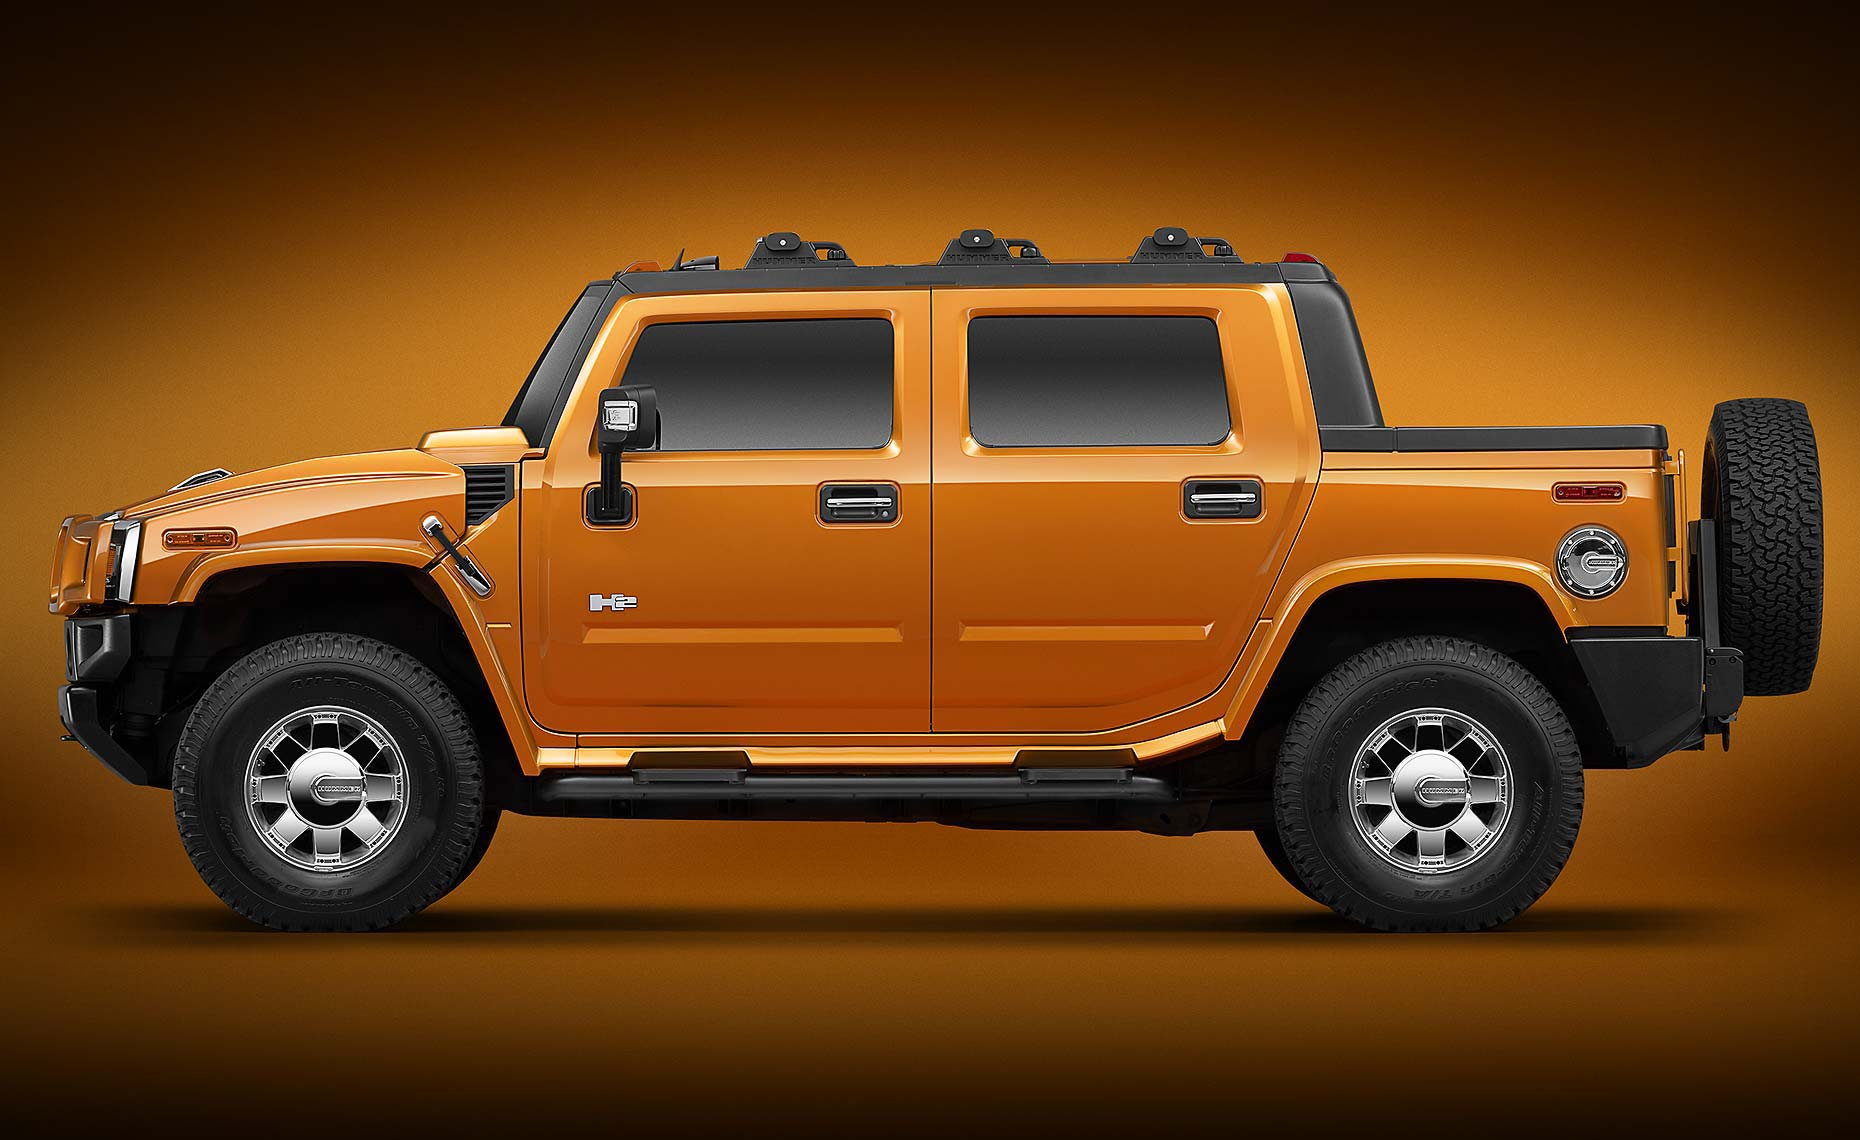 H2T hummer orange-profile.jpg